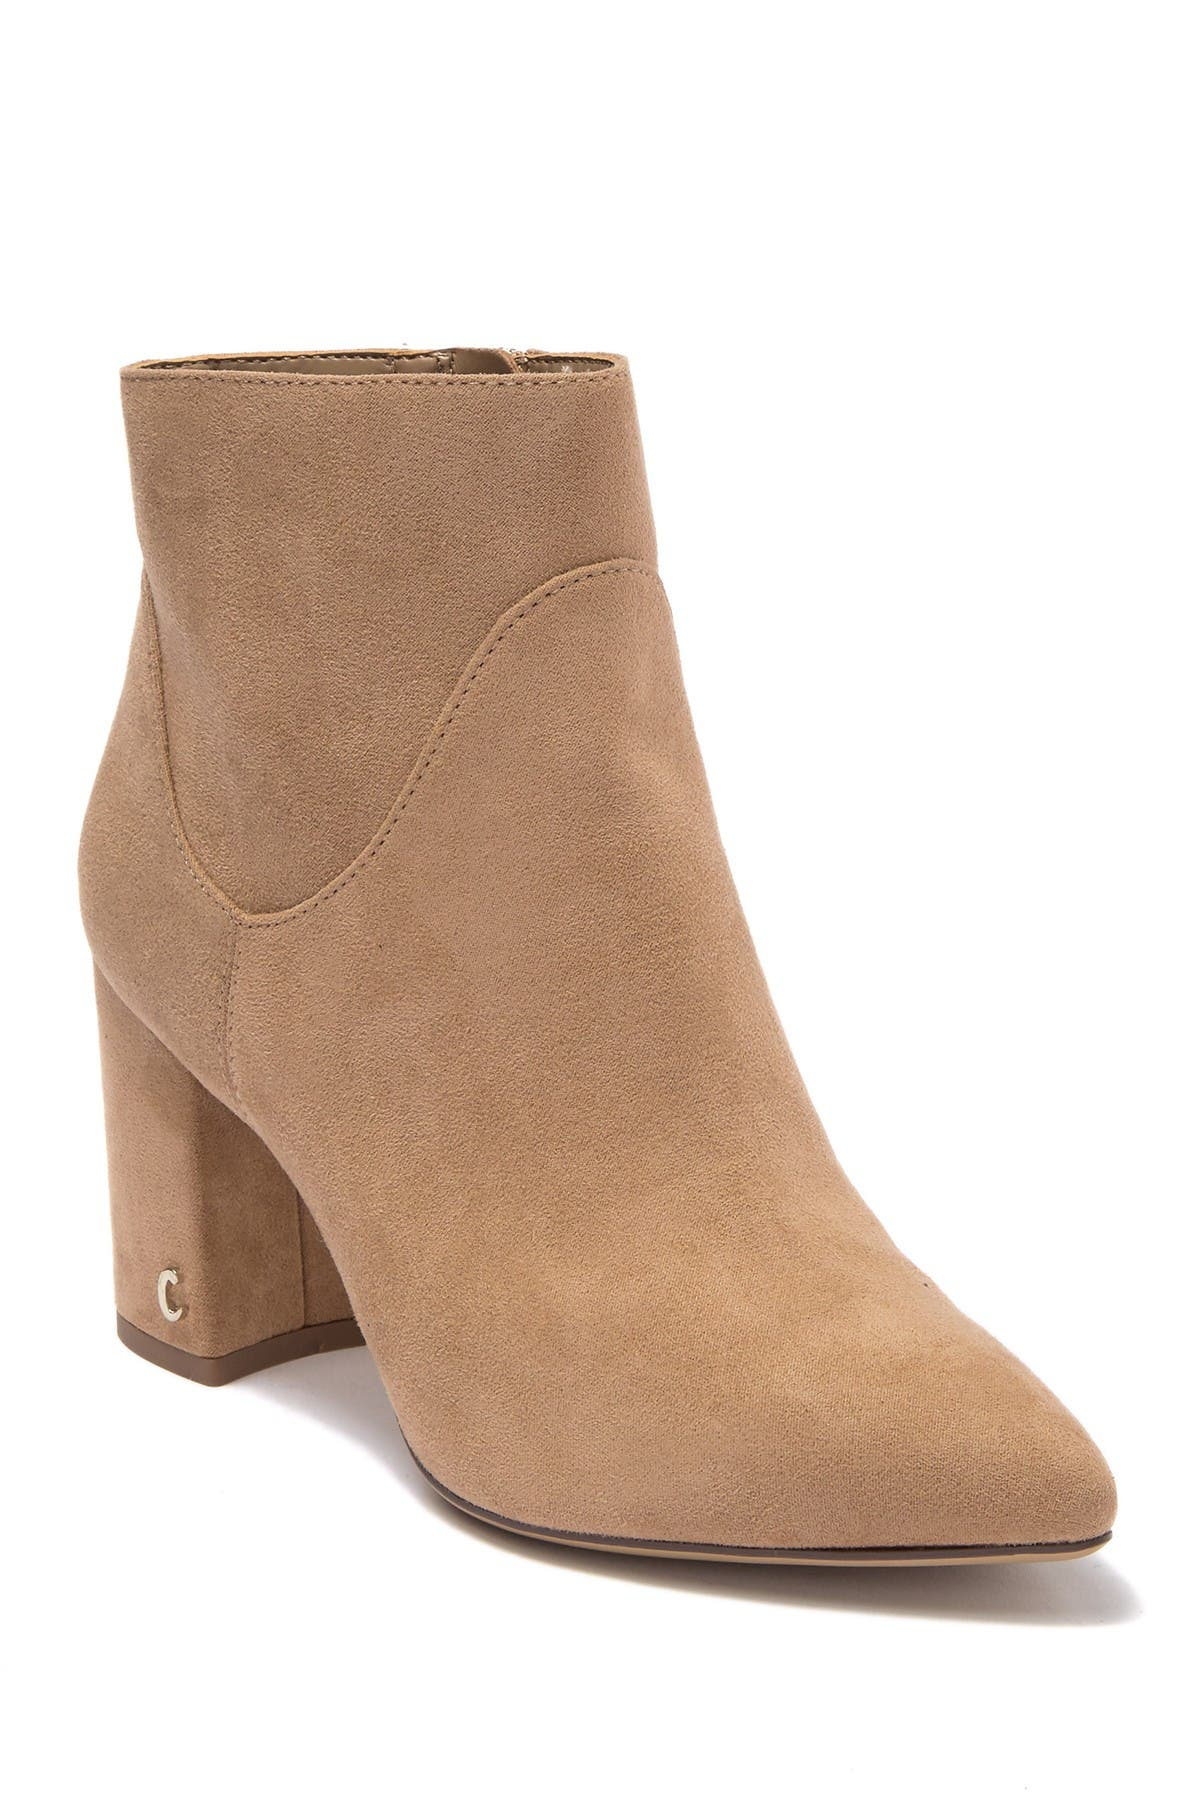 Image of CIRCUS BY SAM EDELMAN Hadden Block Heel Ankle Boot